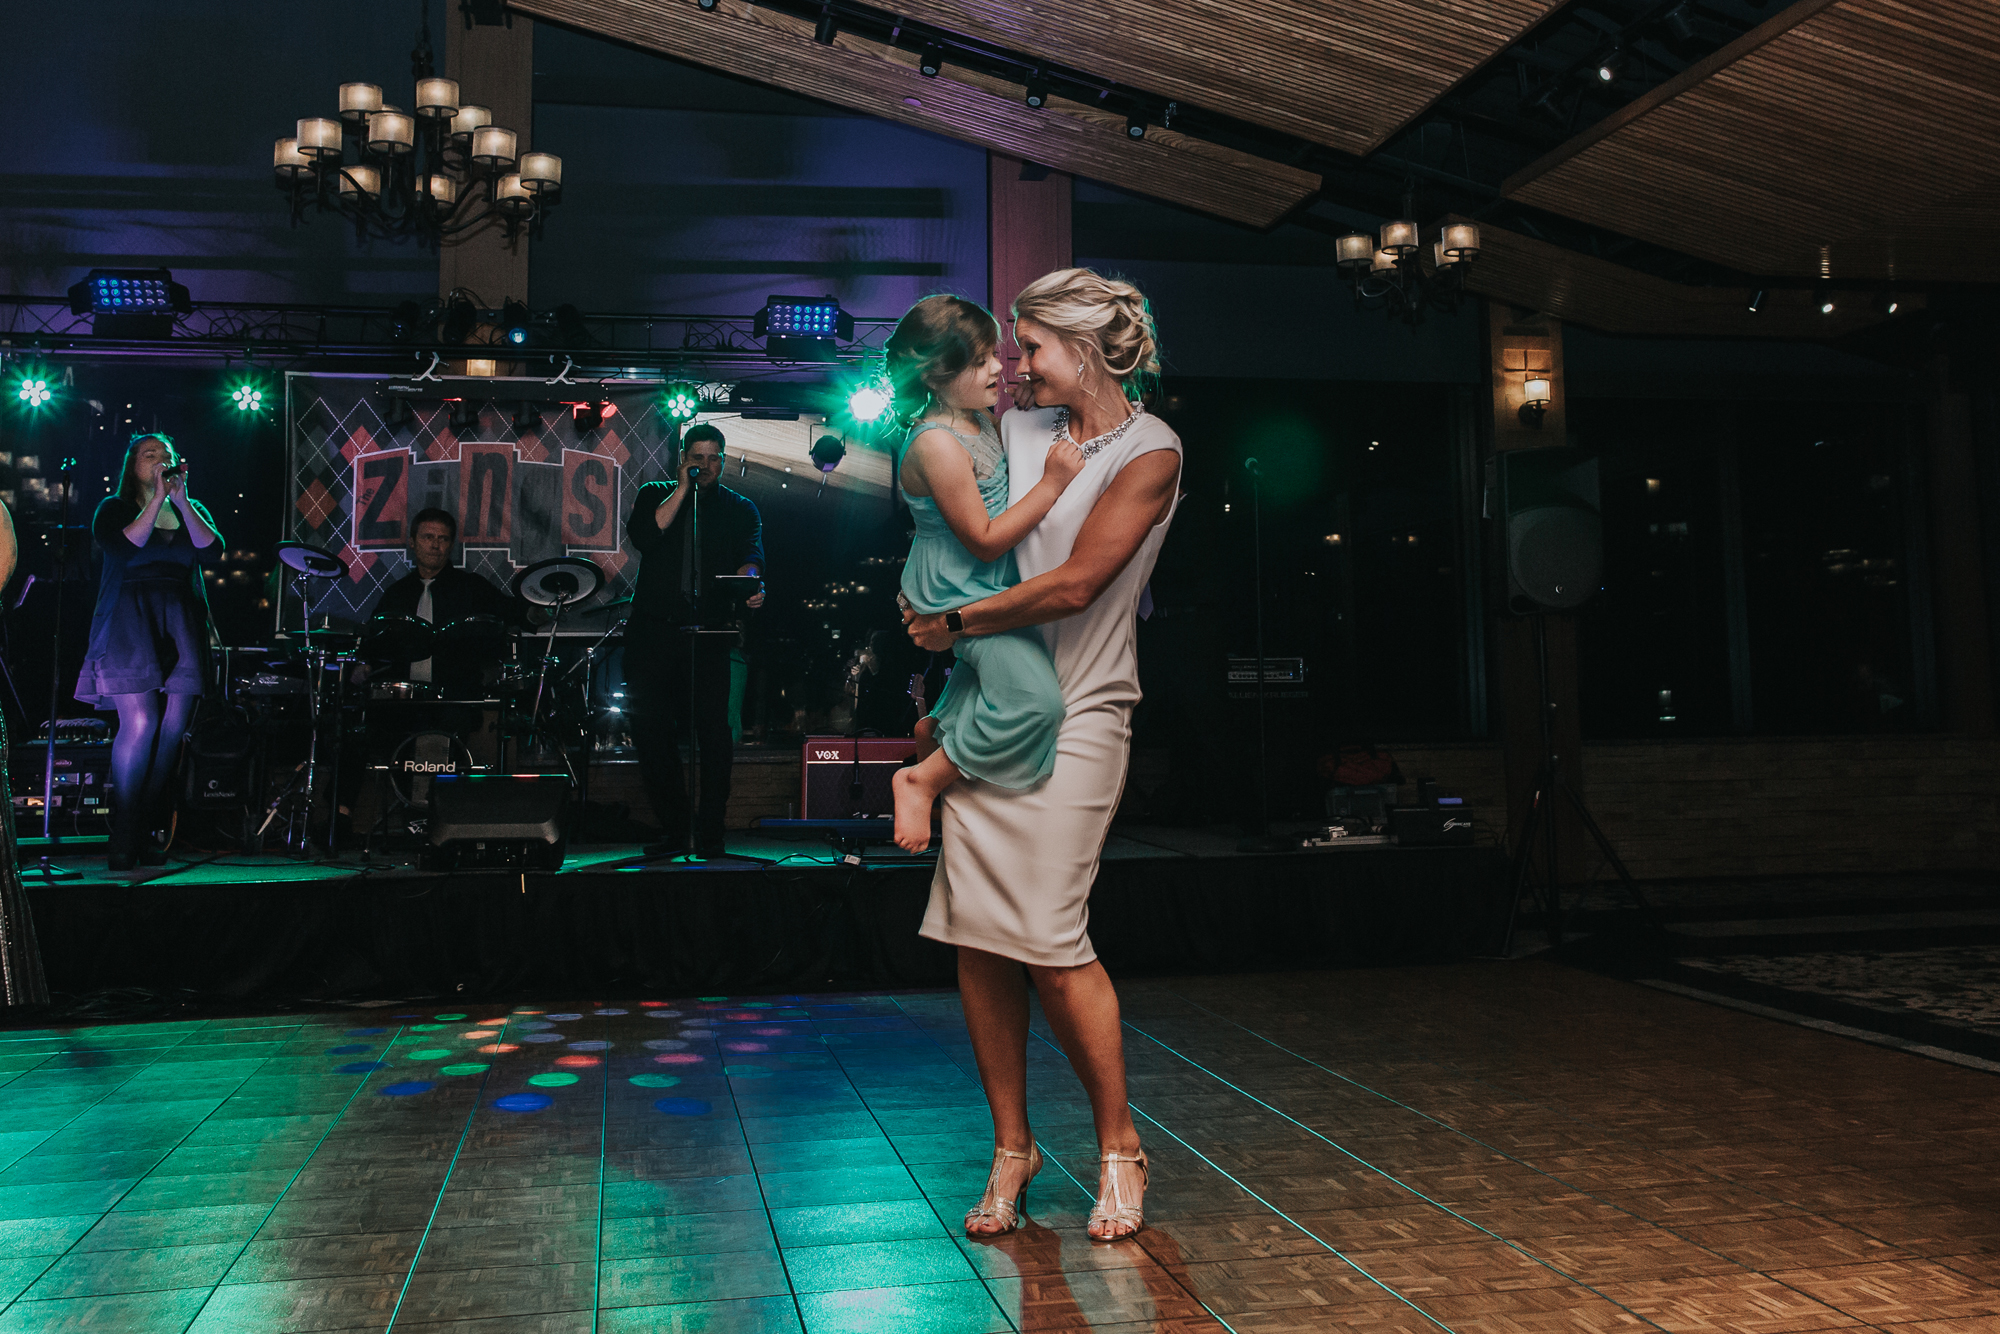 jdrf-dancing-photography